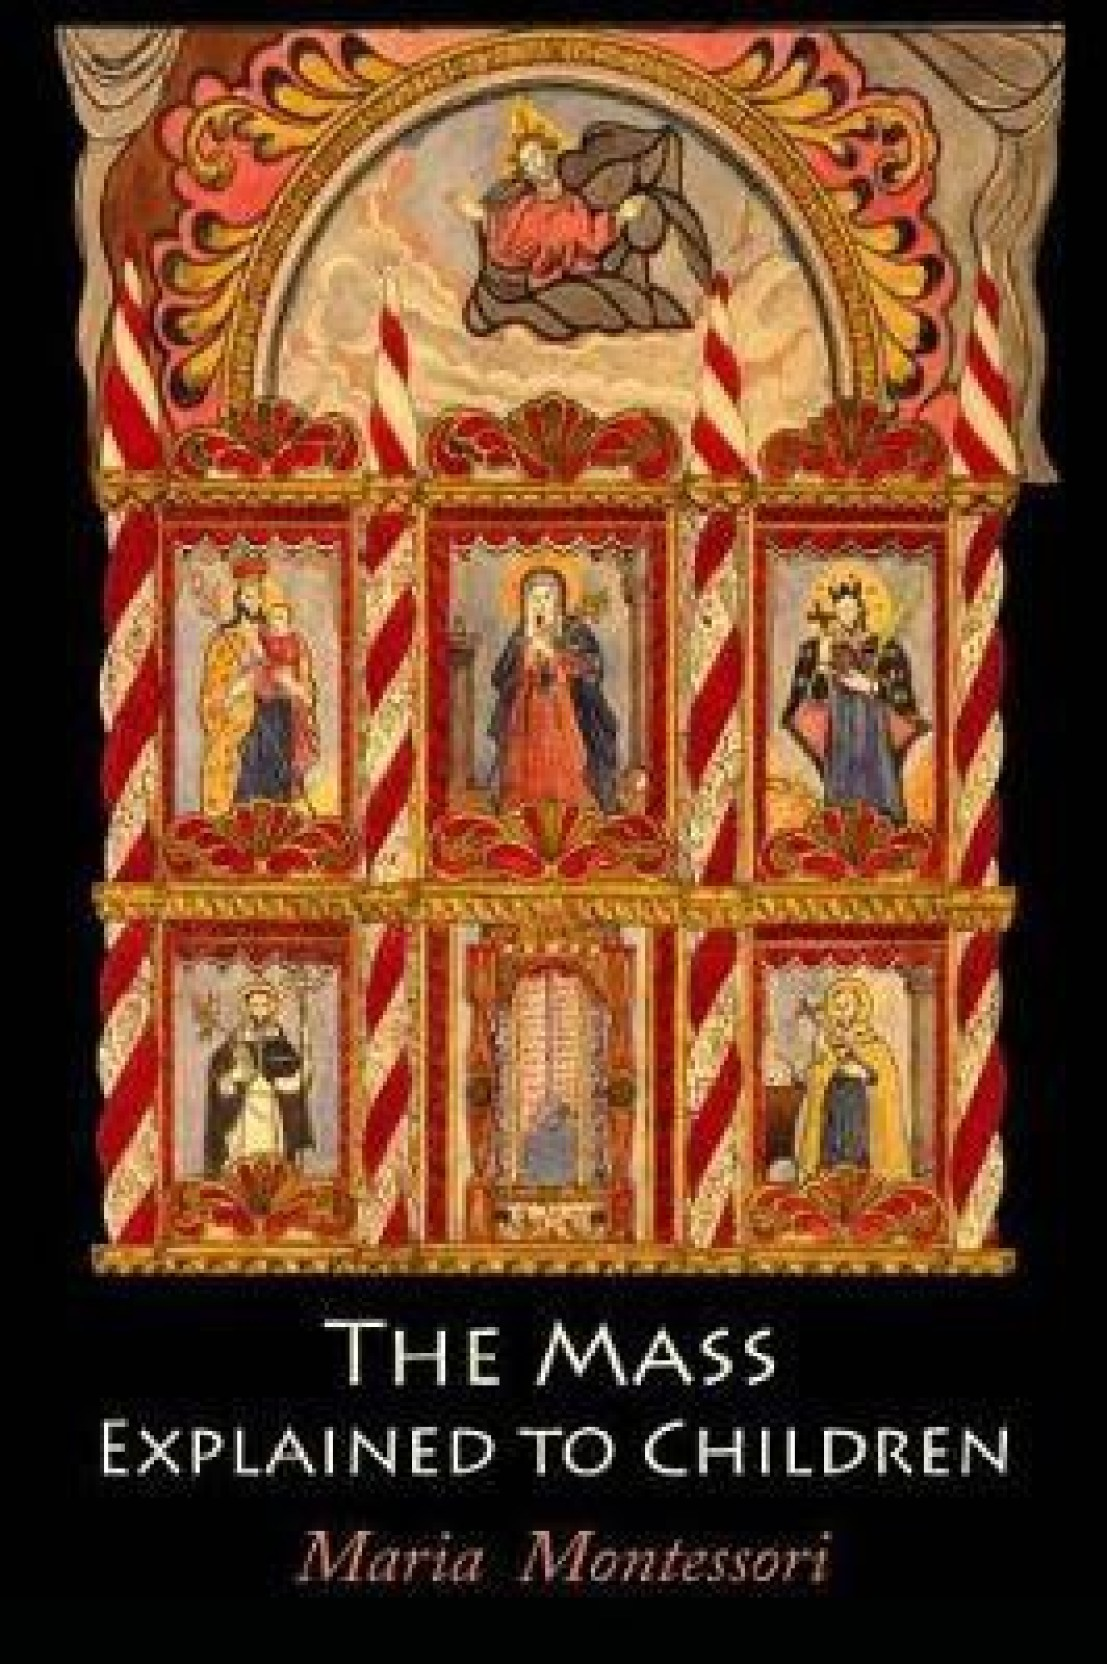 The Mass Explained to Children. ADD TO CART